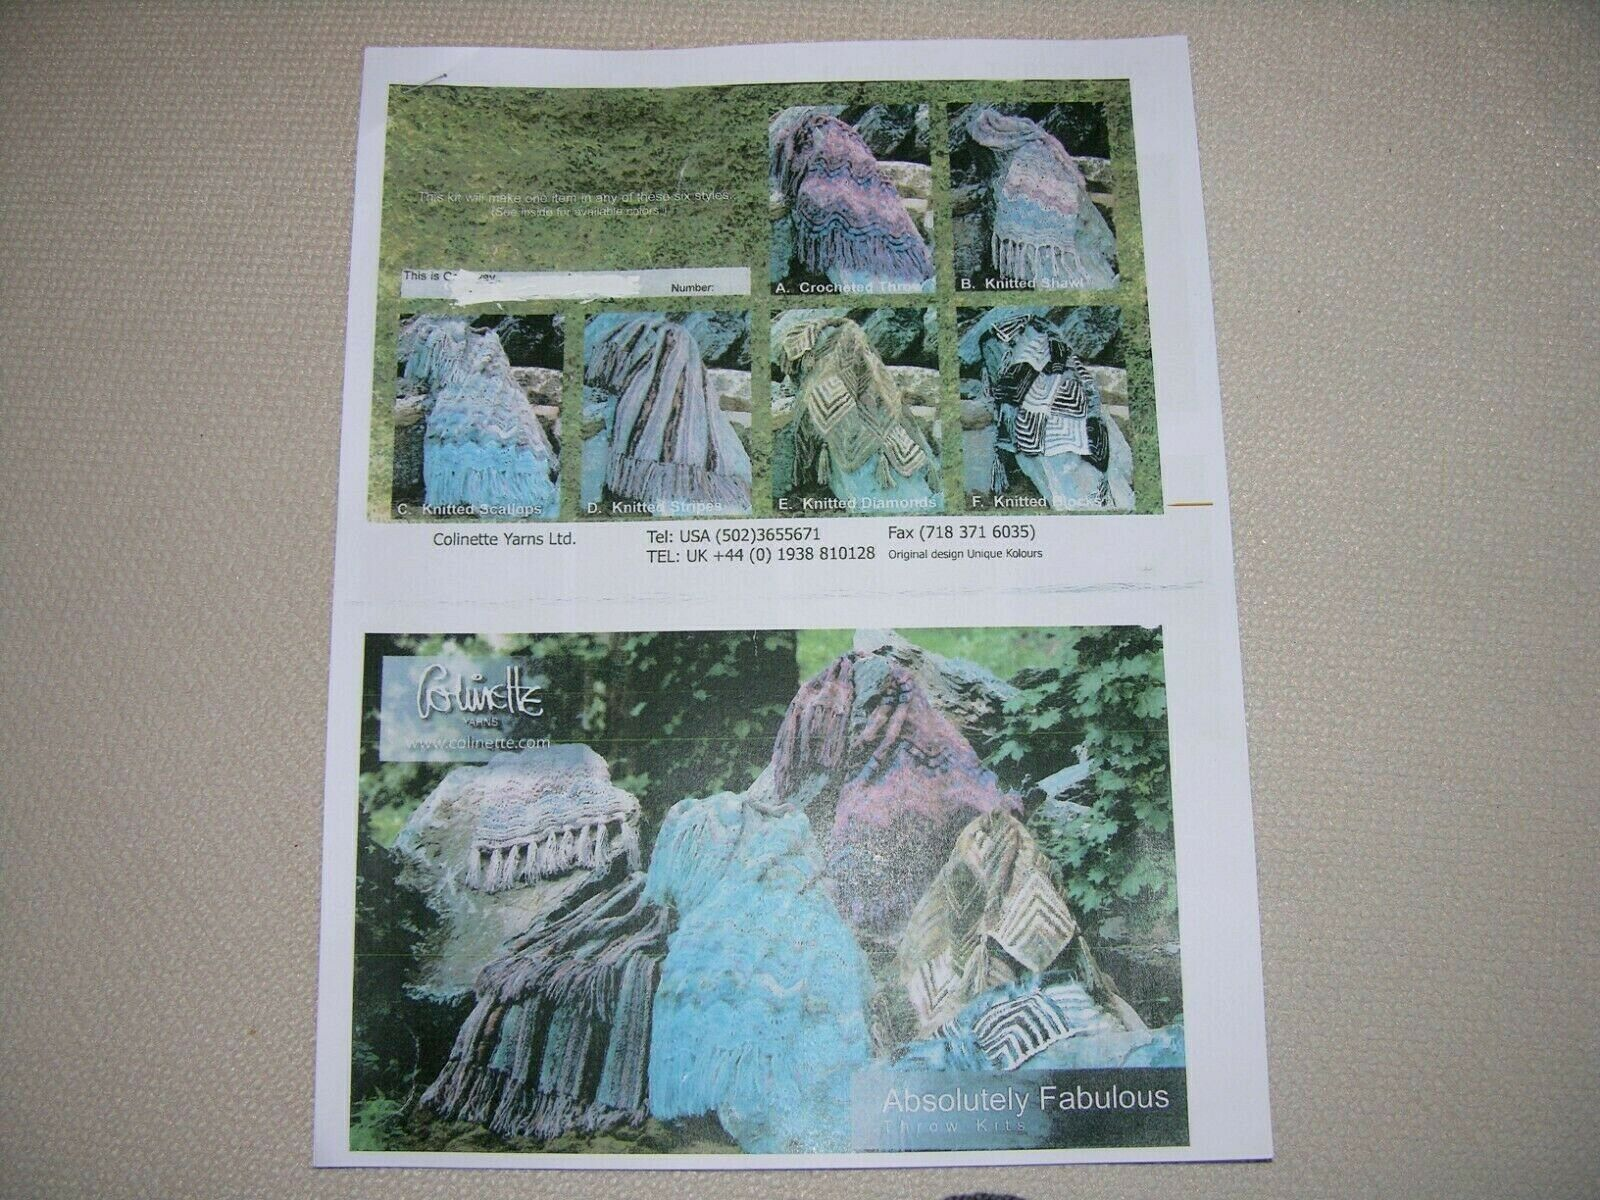 CUSTOM COLINETTE ABFAB THROW KIT, Hand Dyed Yarn From U.K. W/ Substitution - $389.99